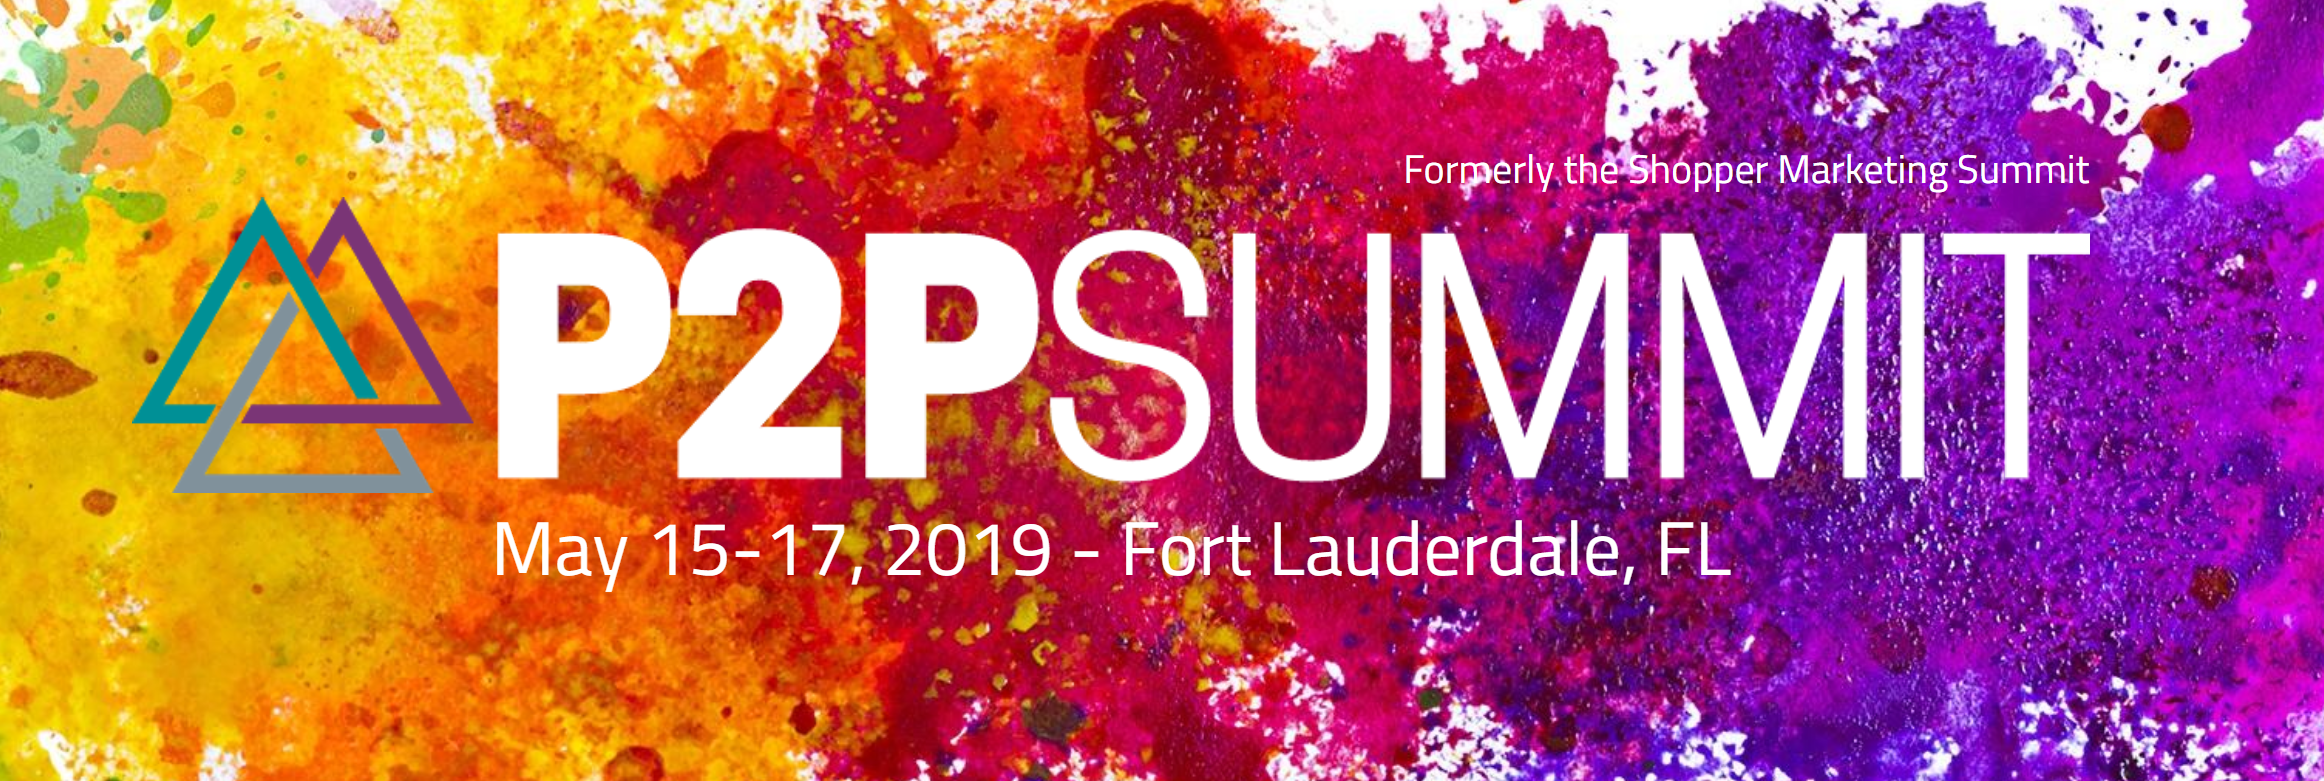 path to purchase summit 2019